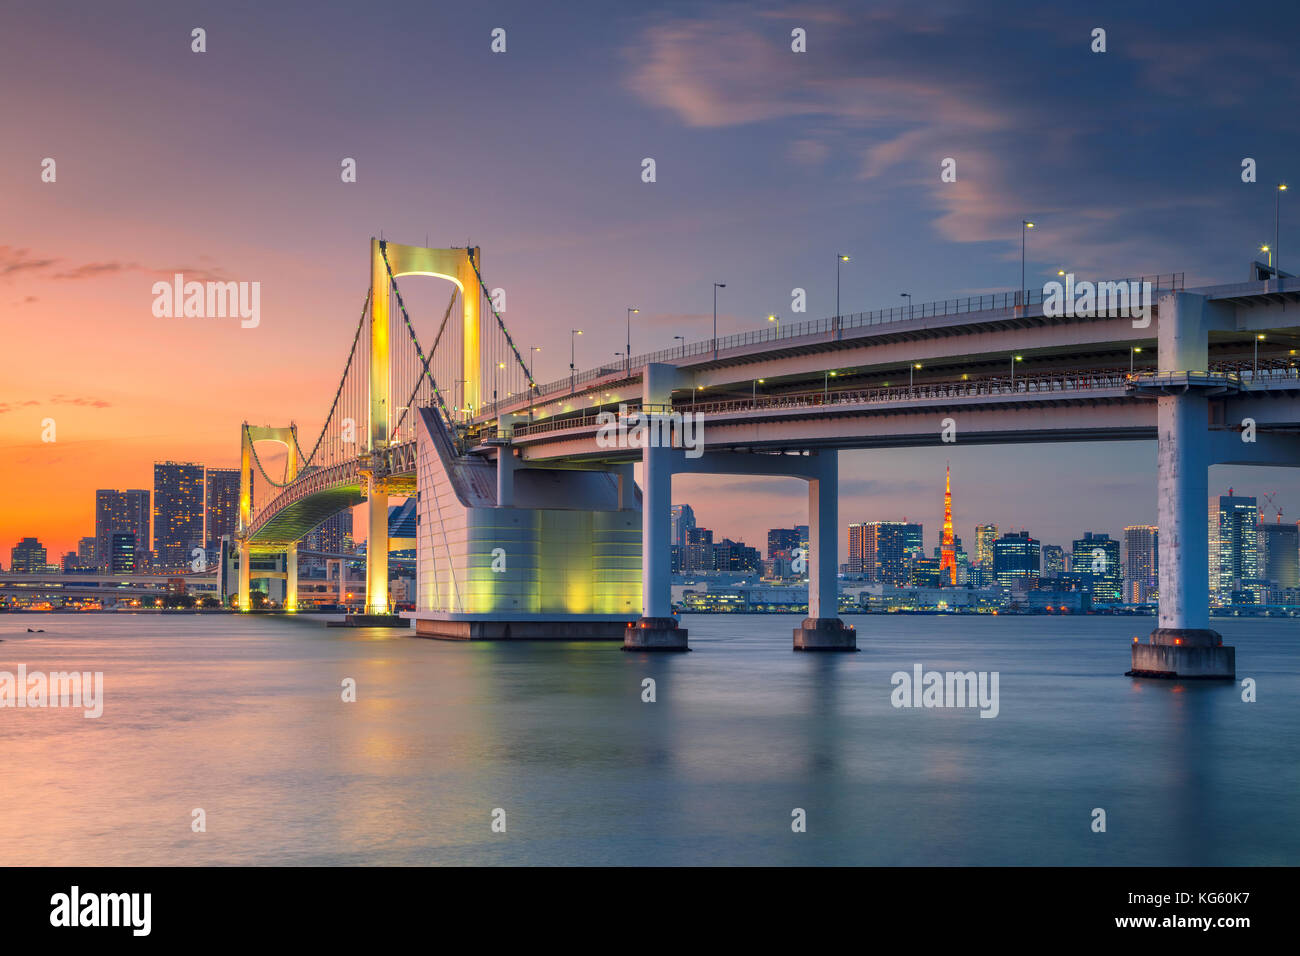 Tokyo. Cityscape image of Tokyo, Japan with Rainbow Bridge during sunset. - Stock Image